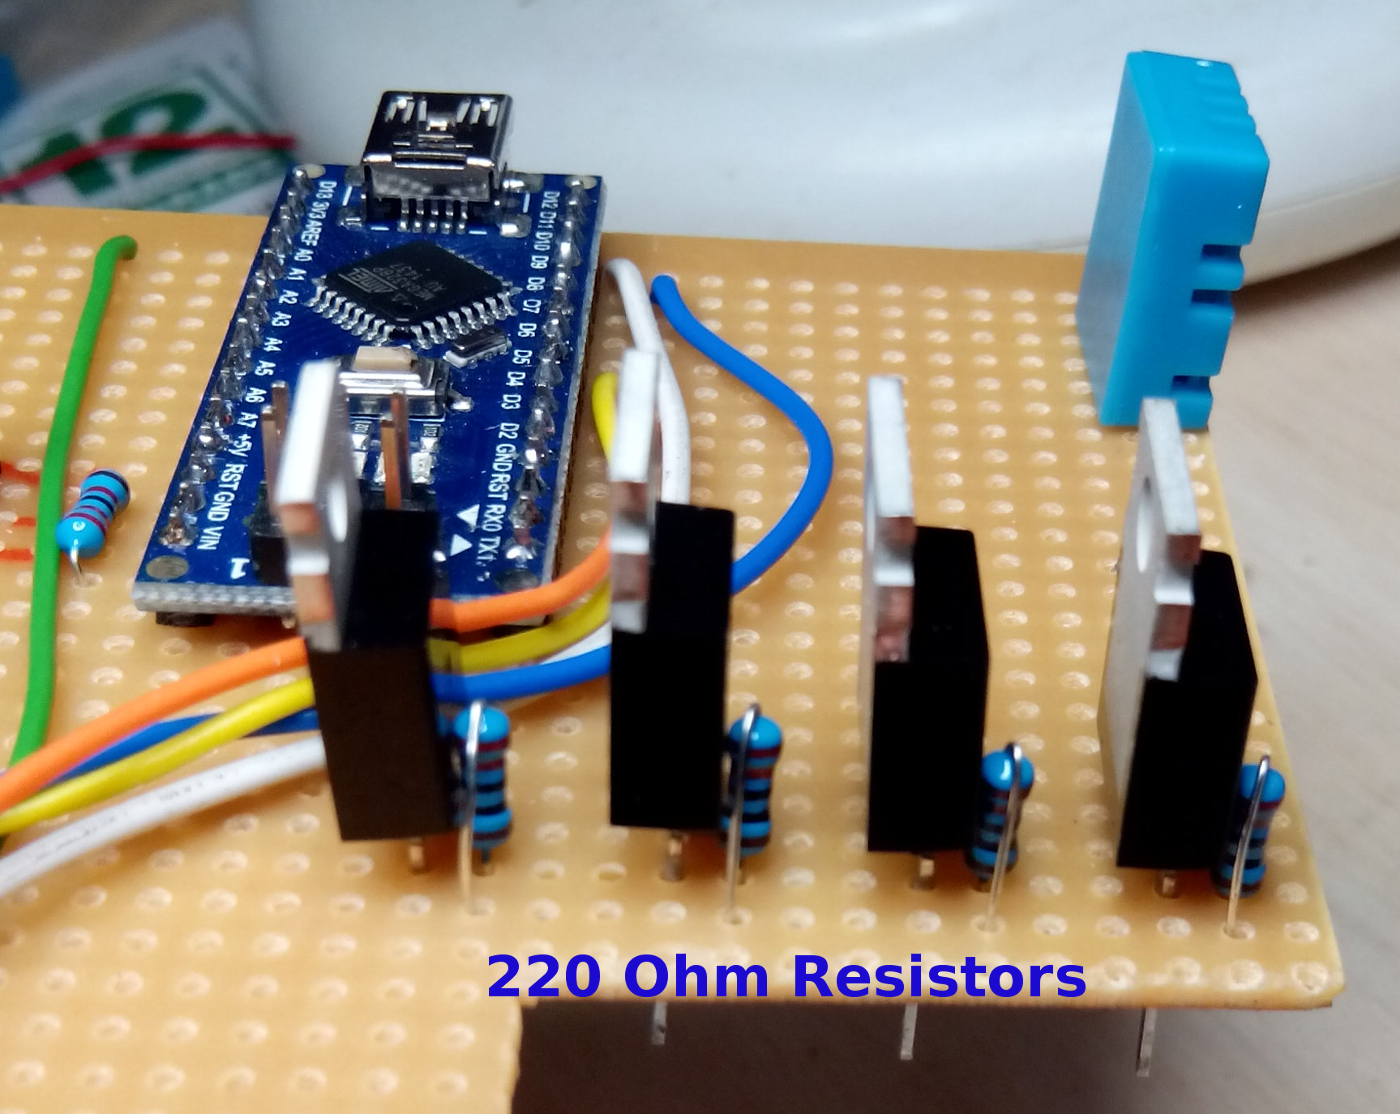 Gate resistors added